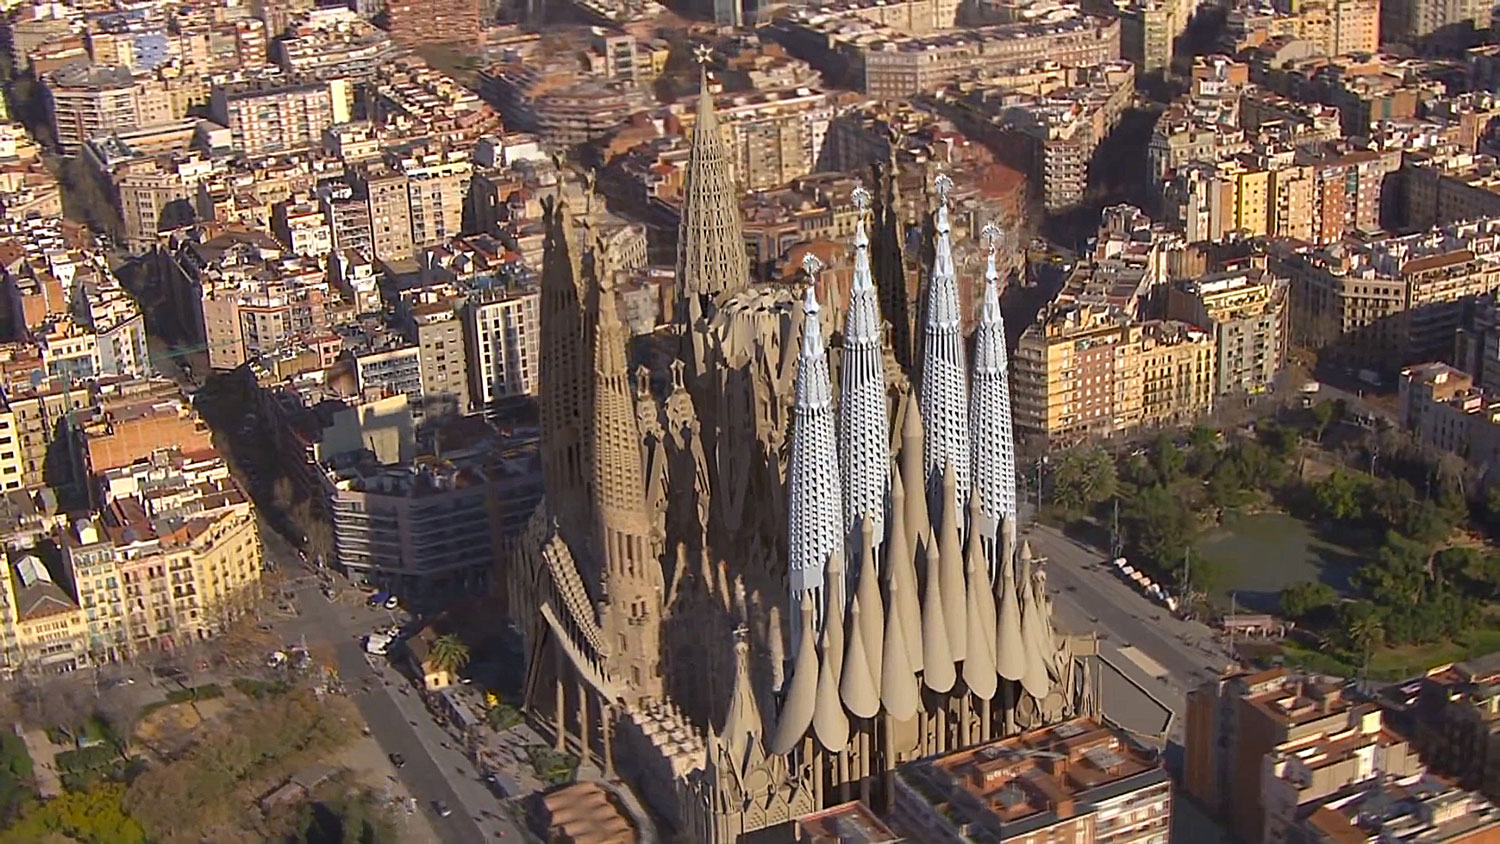 Video // Animated Fly-By of the Completion of Gaudi's Sagrada Familia.